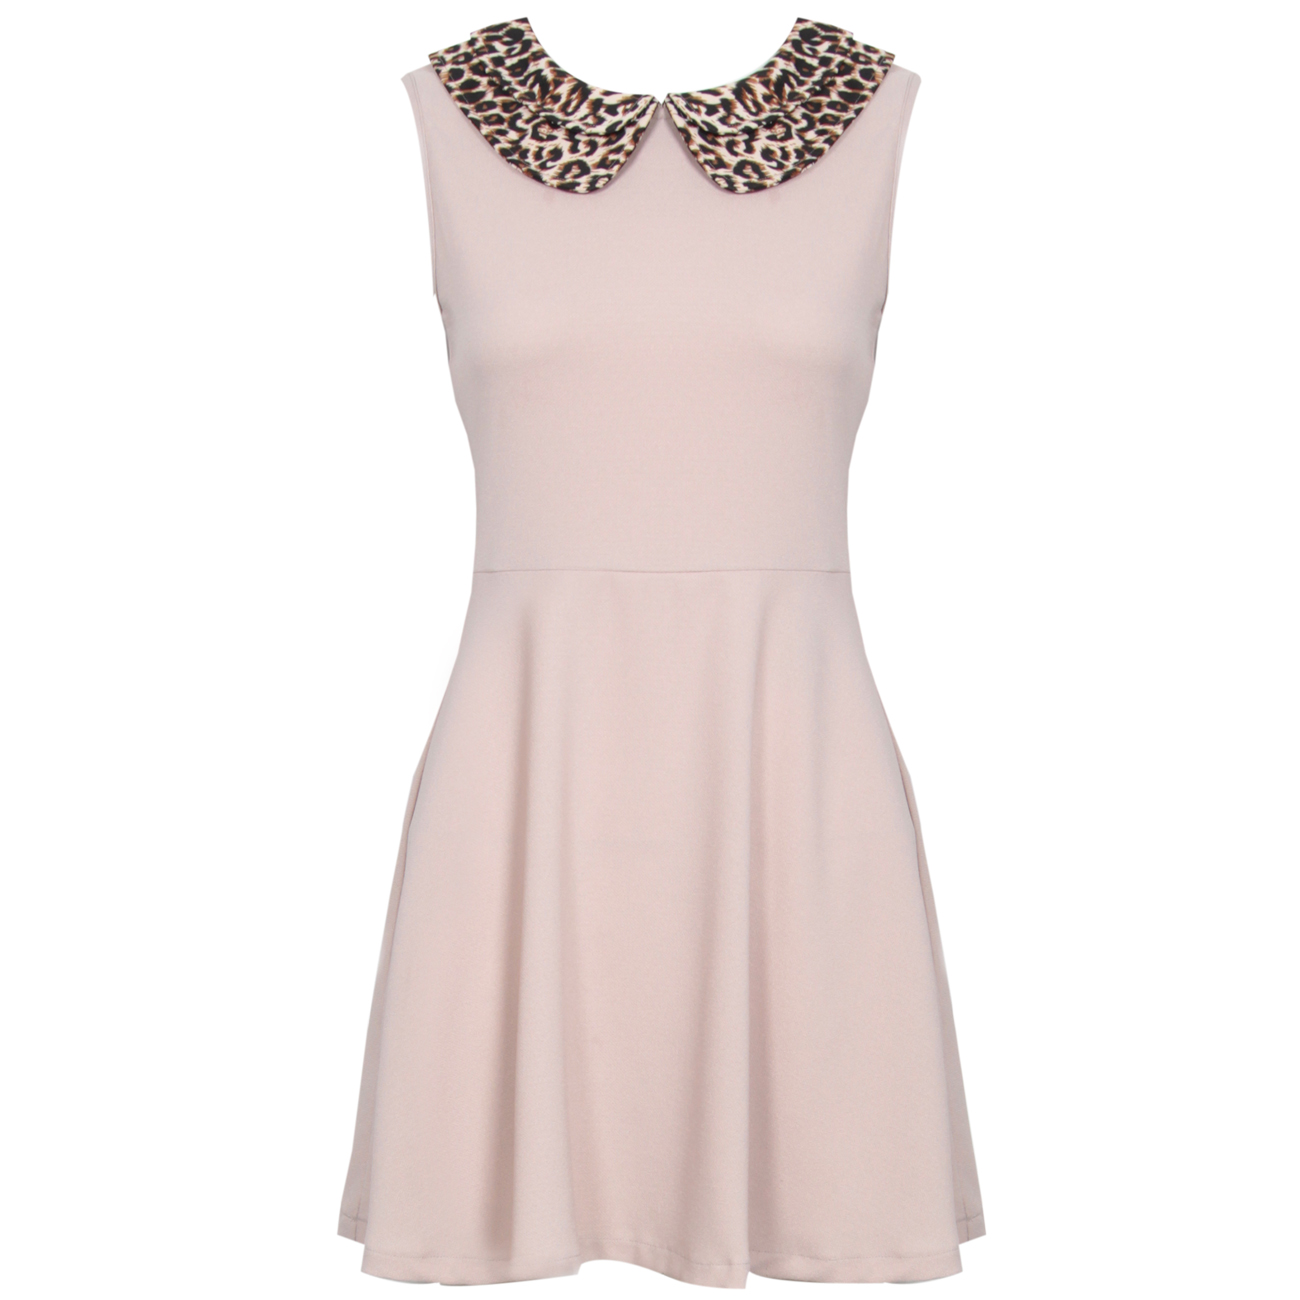 Leopard Print Peter Pan Collar Nude Dress Preview